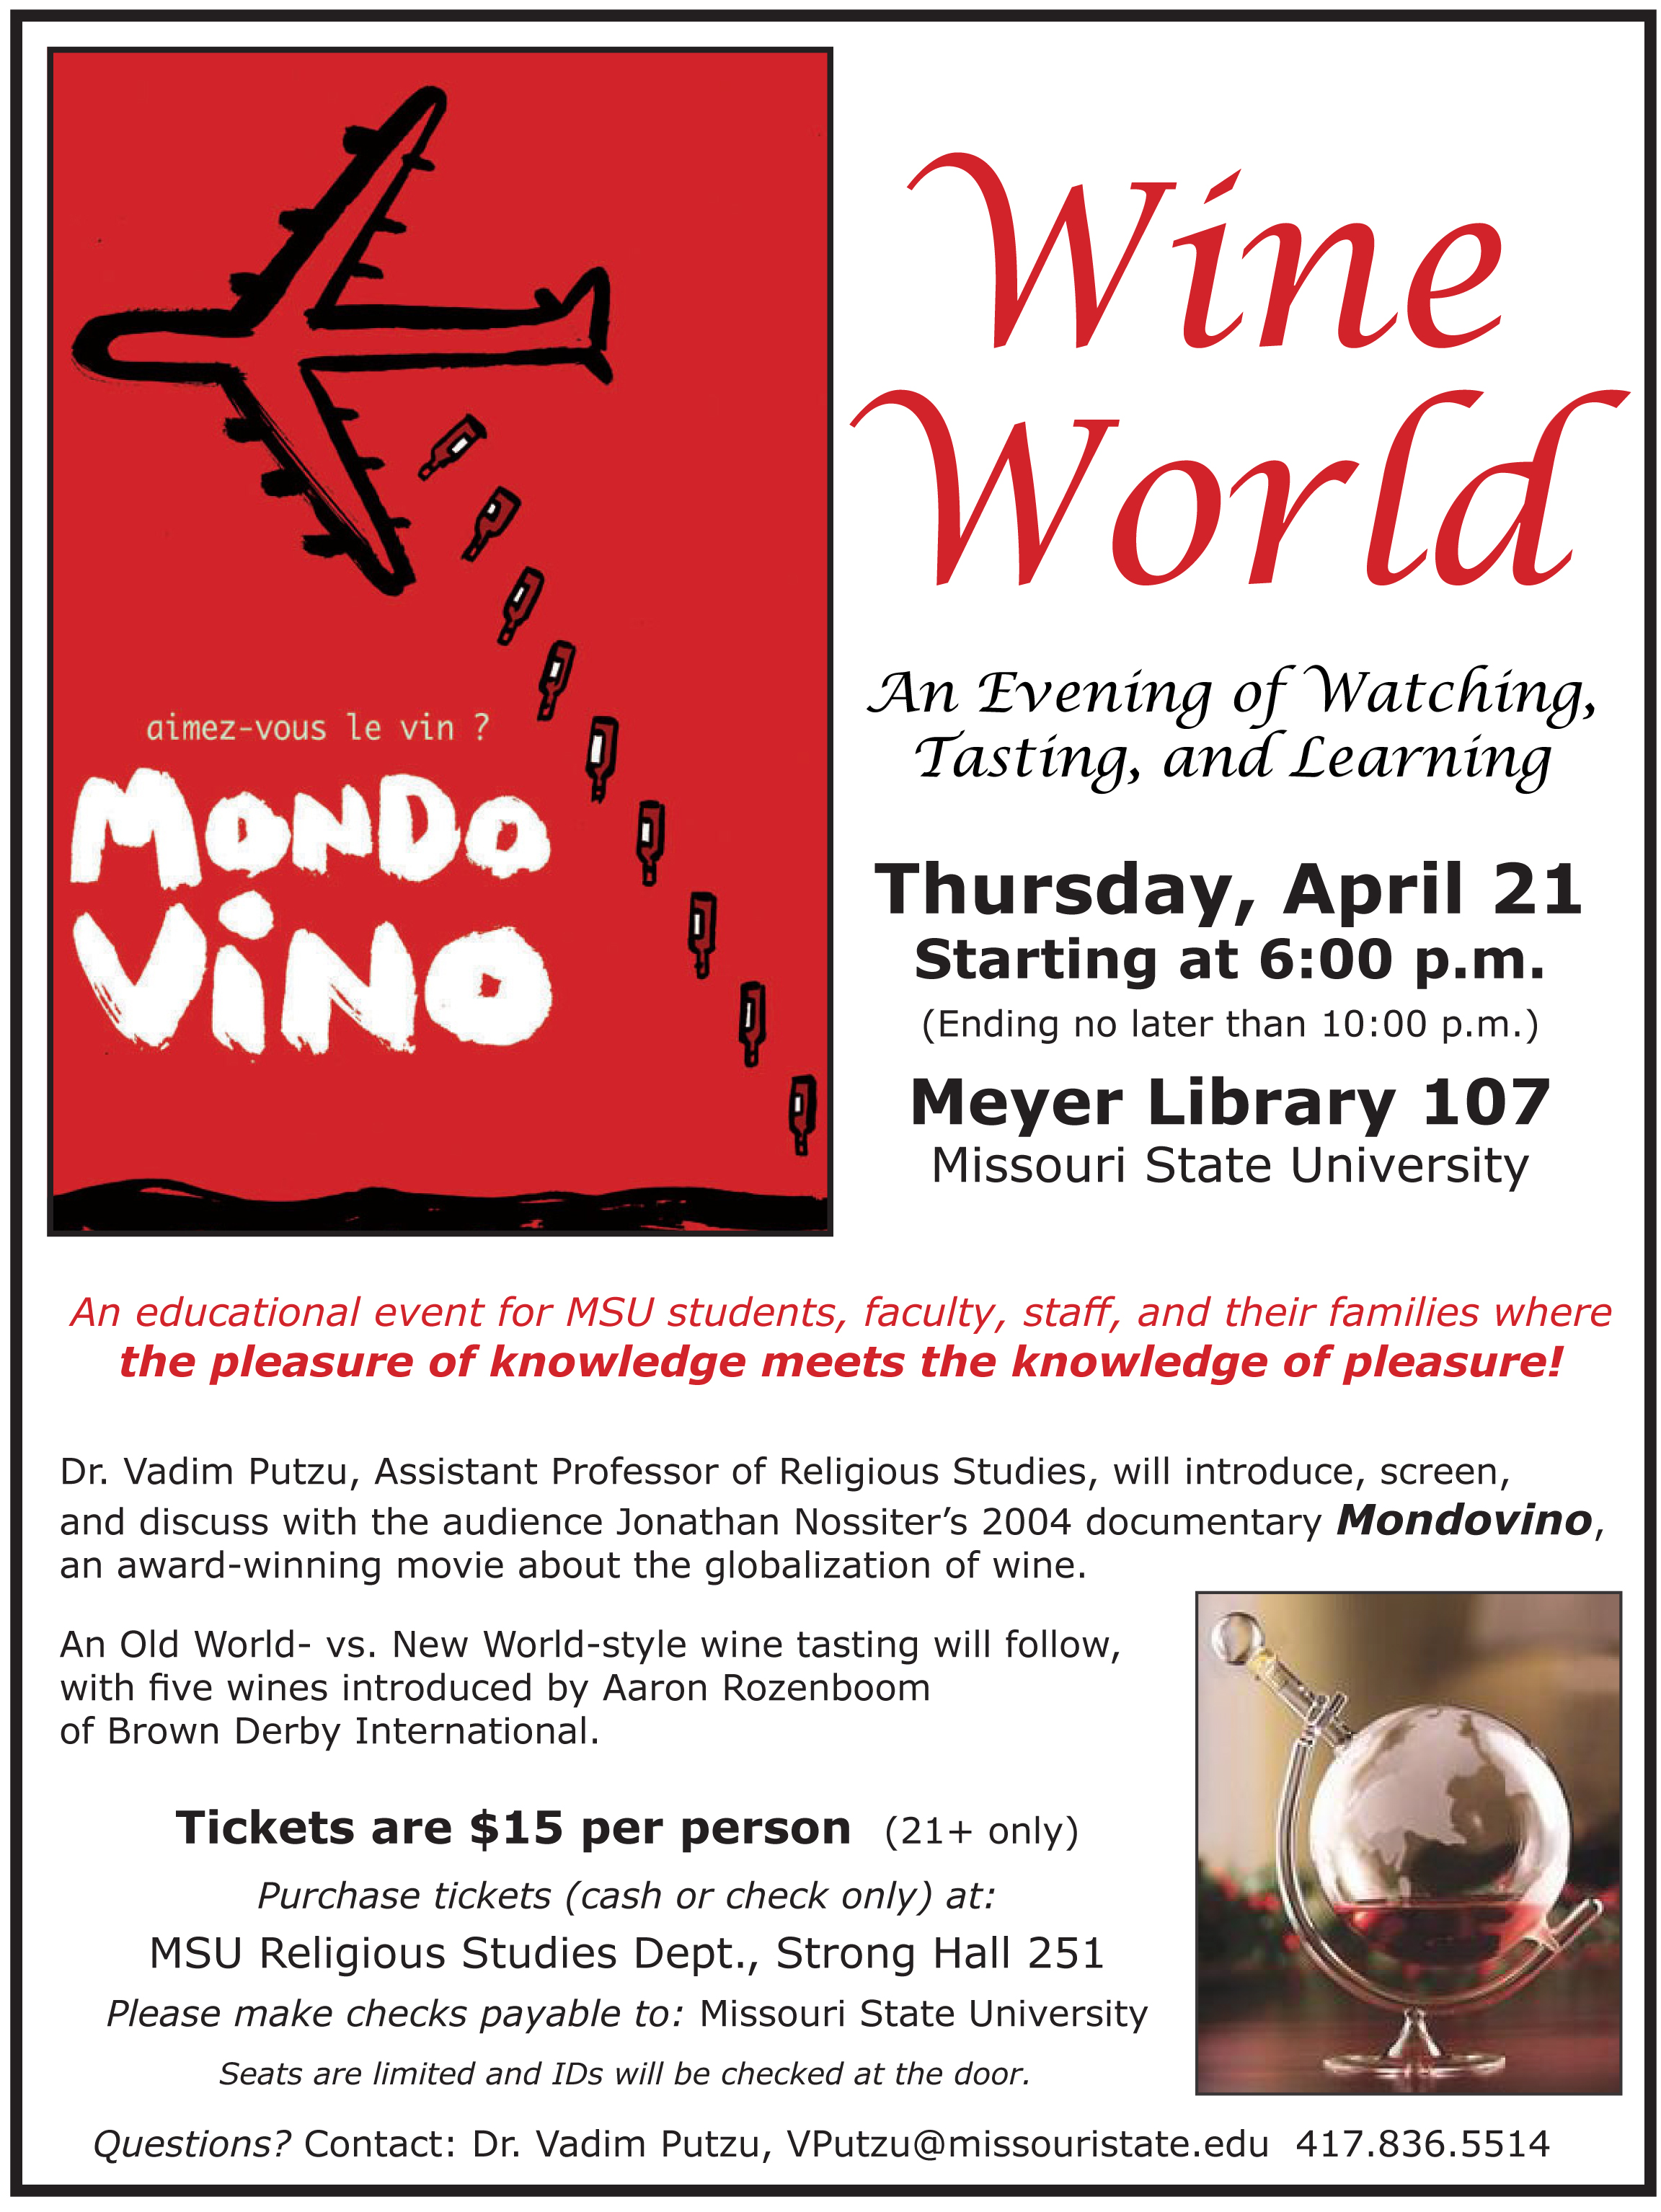 WineWorld flyer